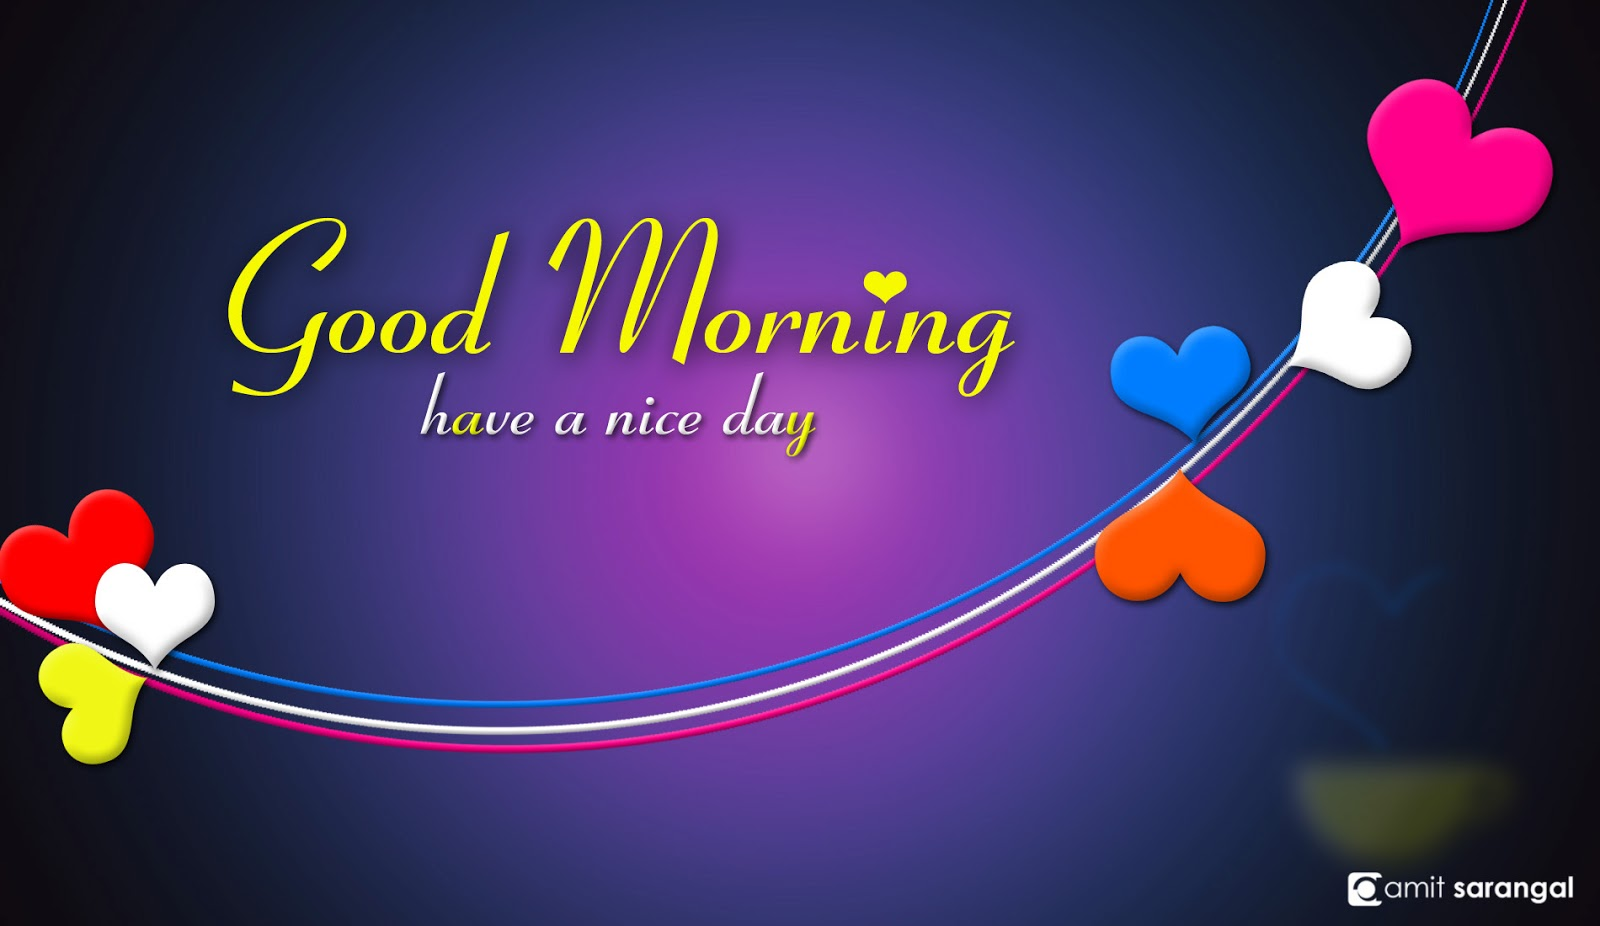 Contact US >> Good Morning 1 | Amit Sarangal